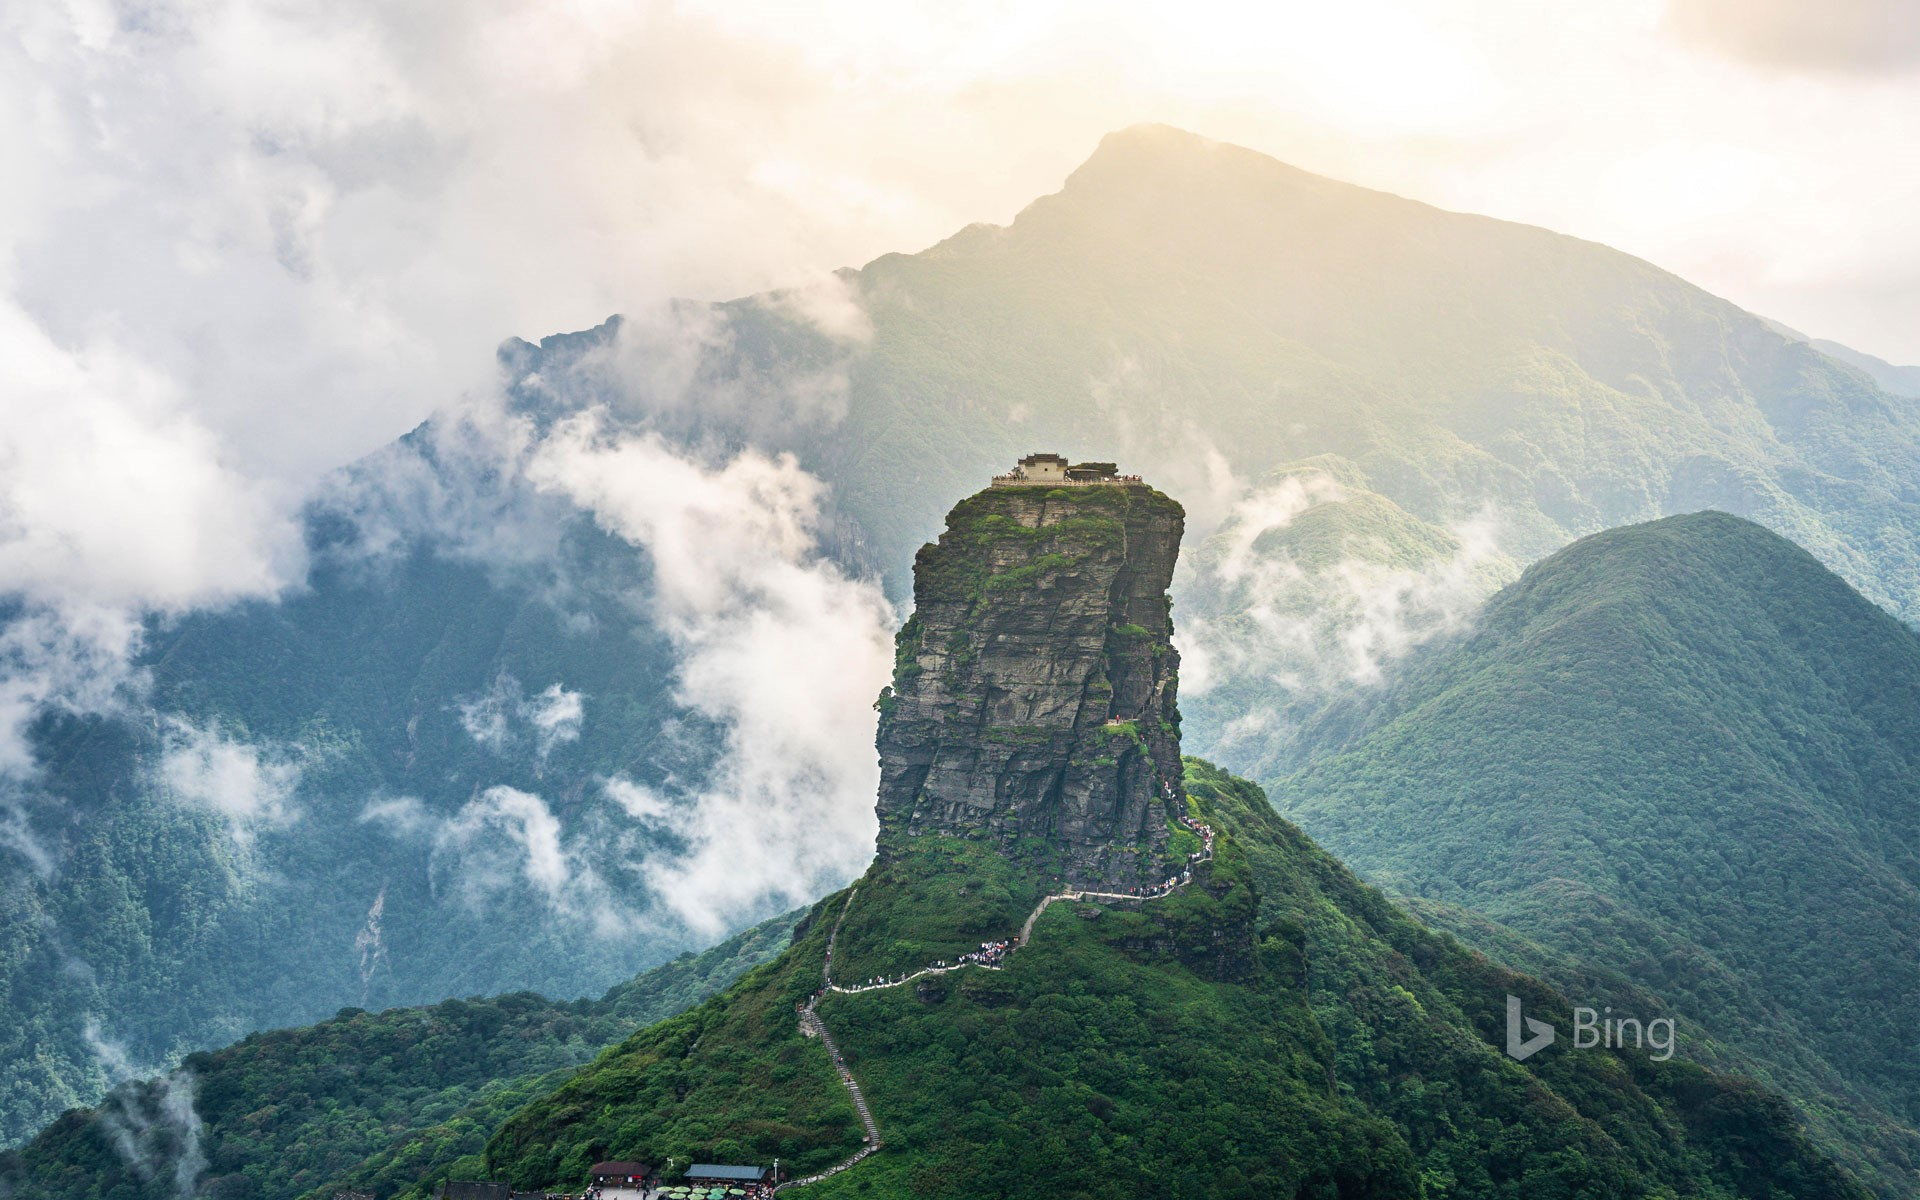 Mount Fanjing, the highest peak of the Wuling Mountains, in southwest China